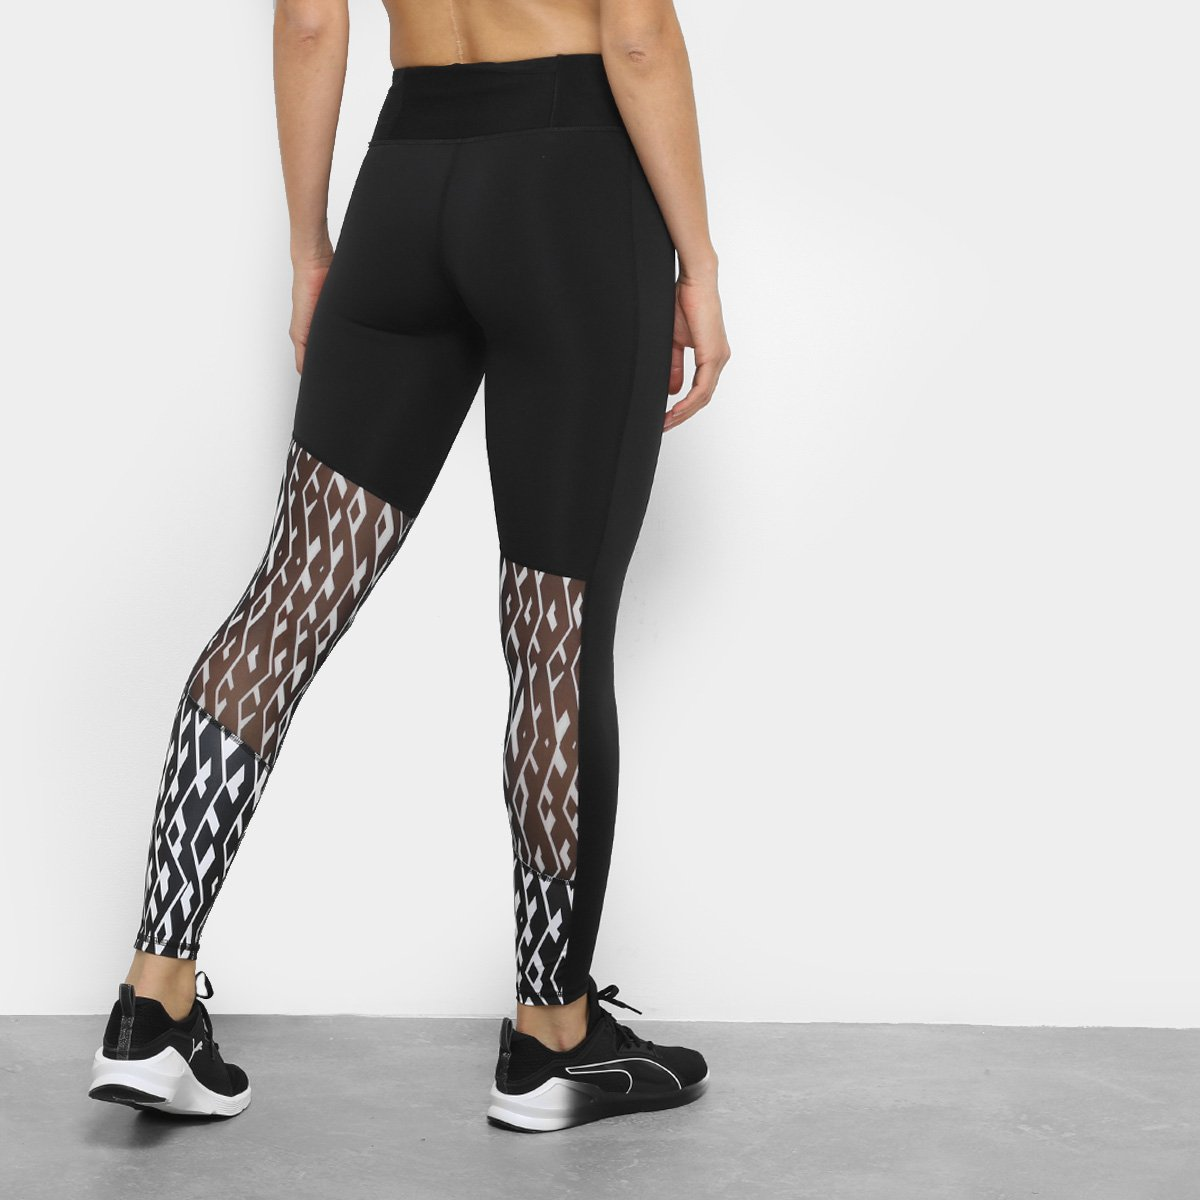 Feminina Preto Graphic e Calça 8 Always 7 Puma On Legging Branco BB8qw0Fa